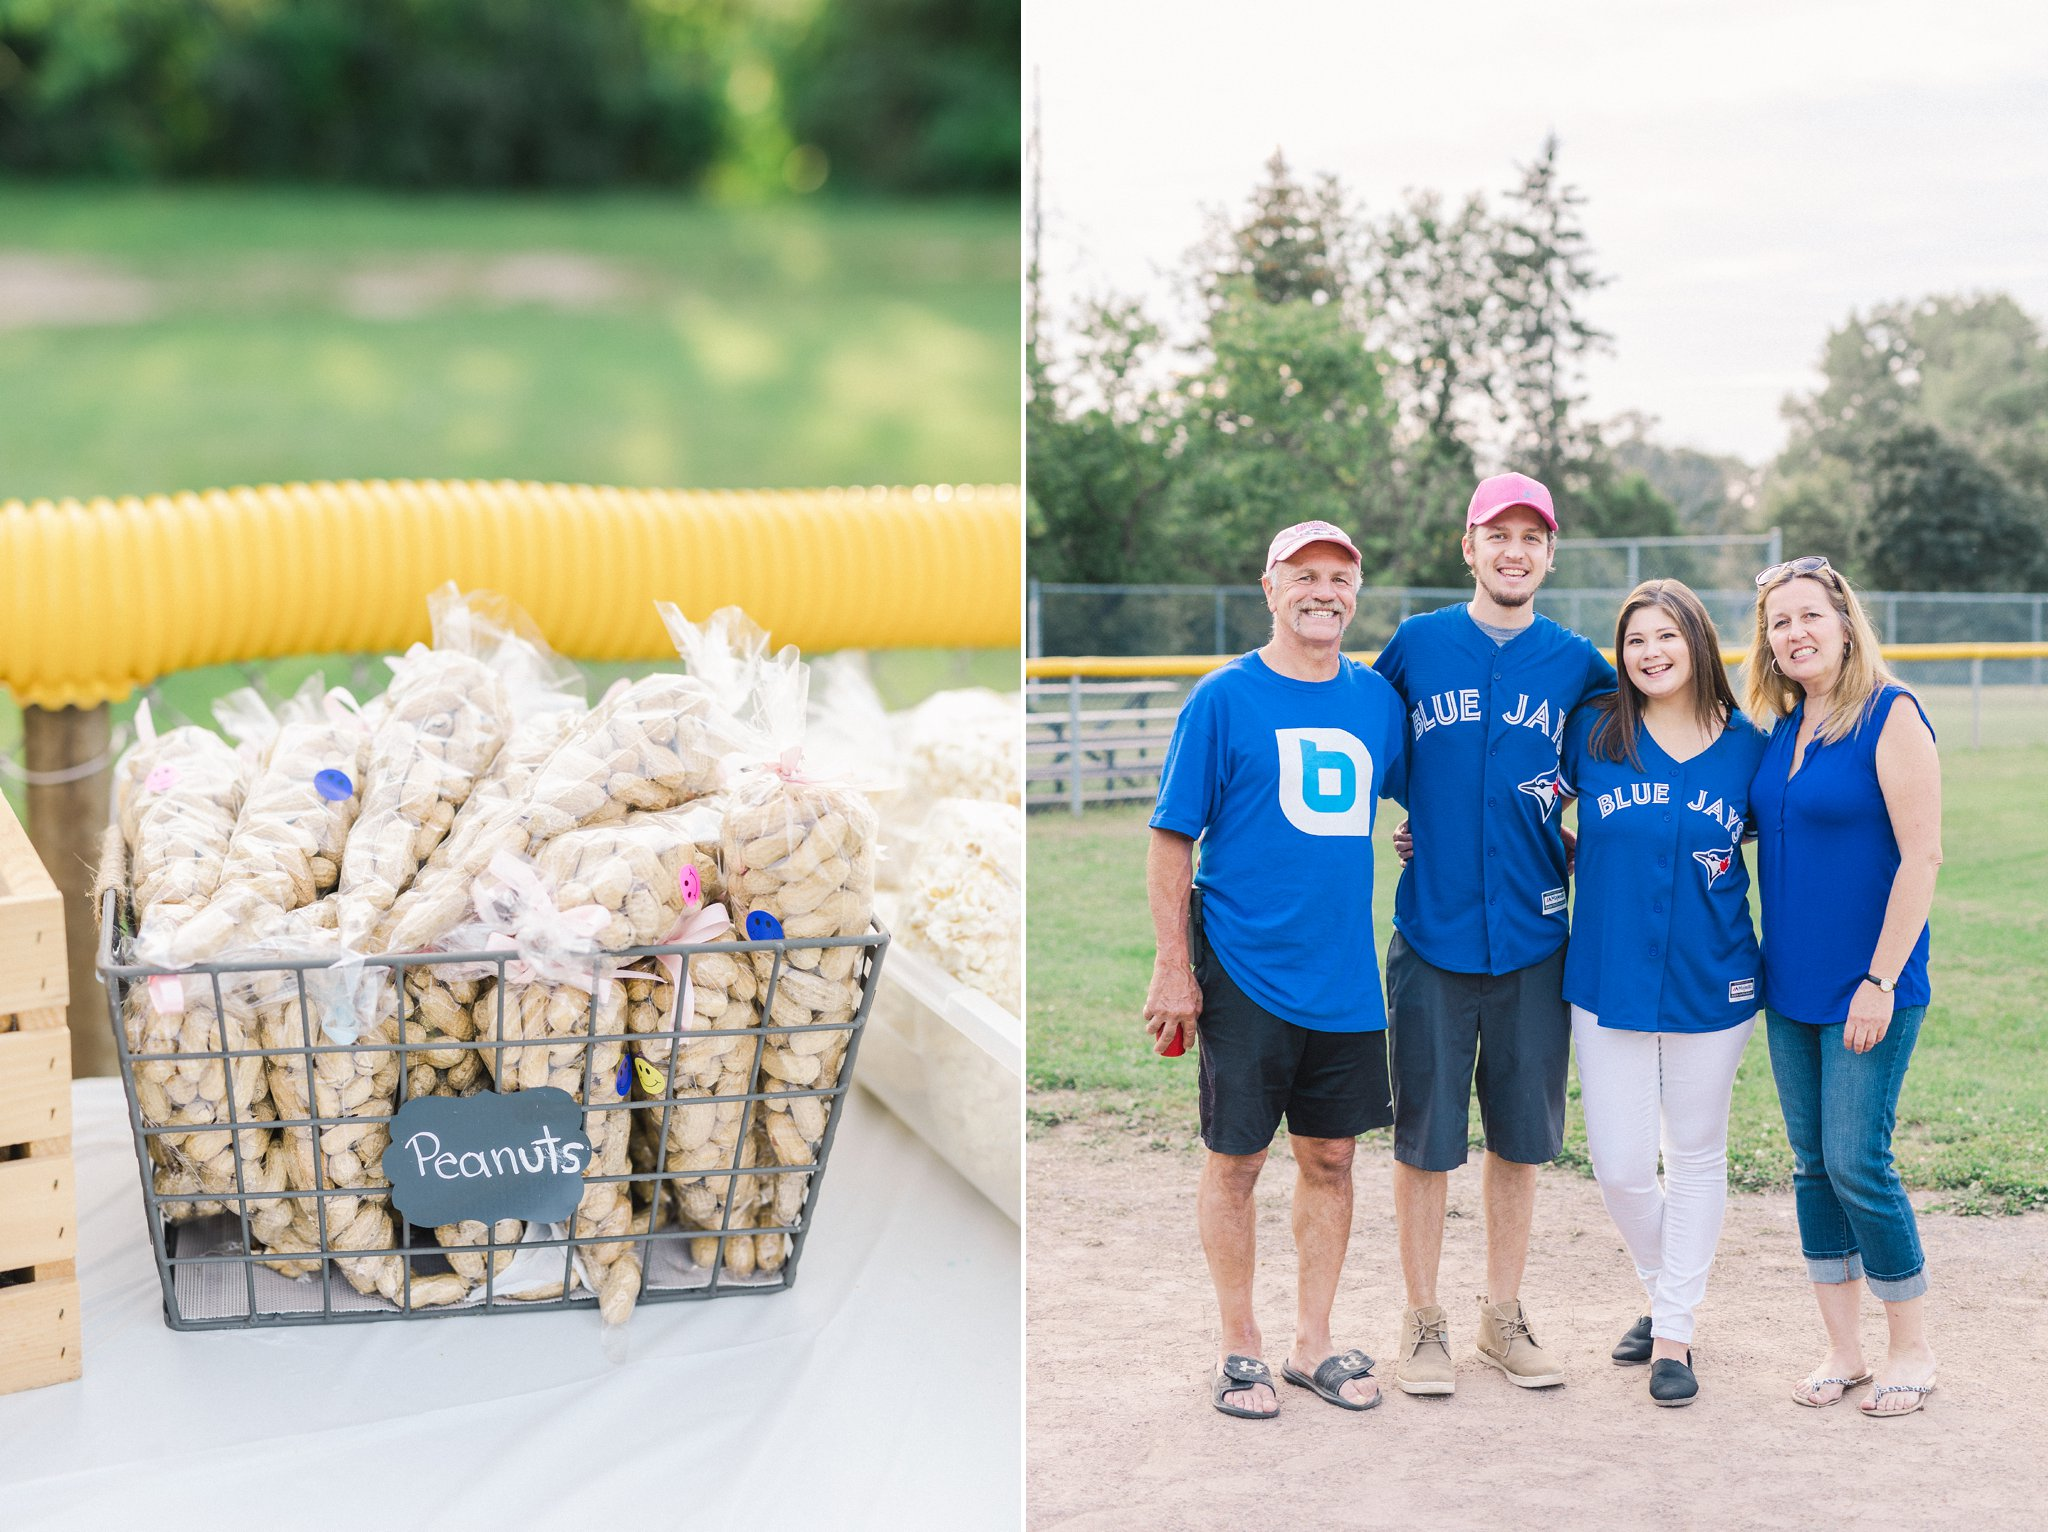 Softball gender reveal party peanuts